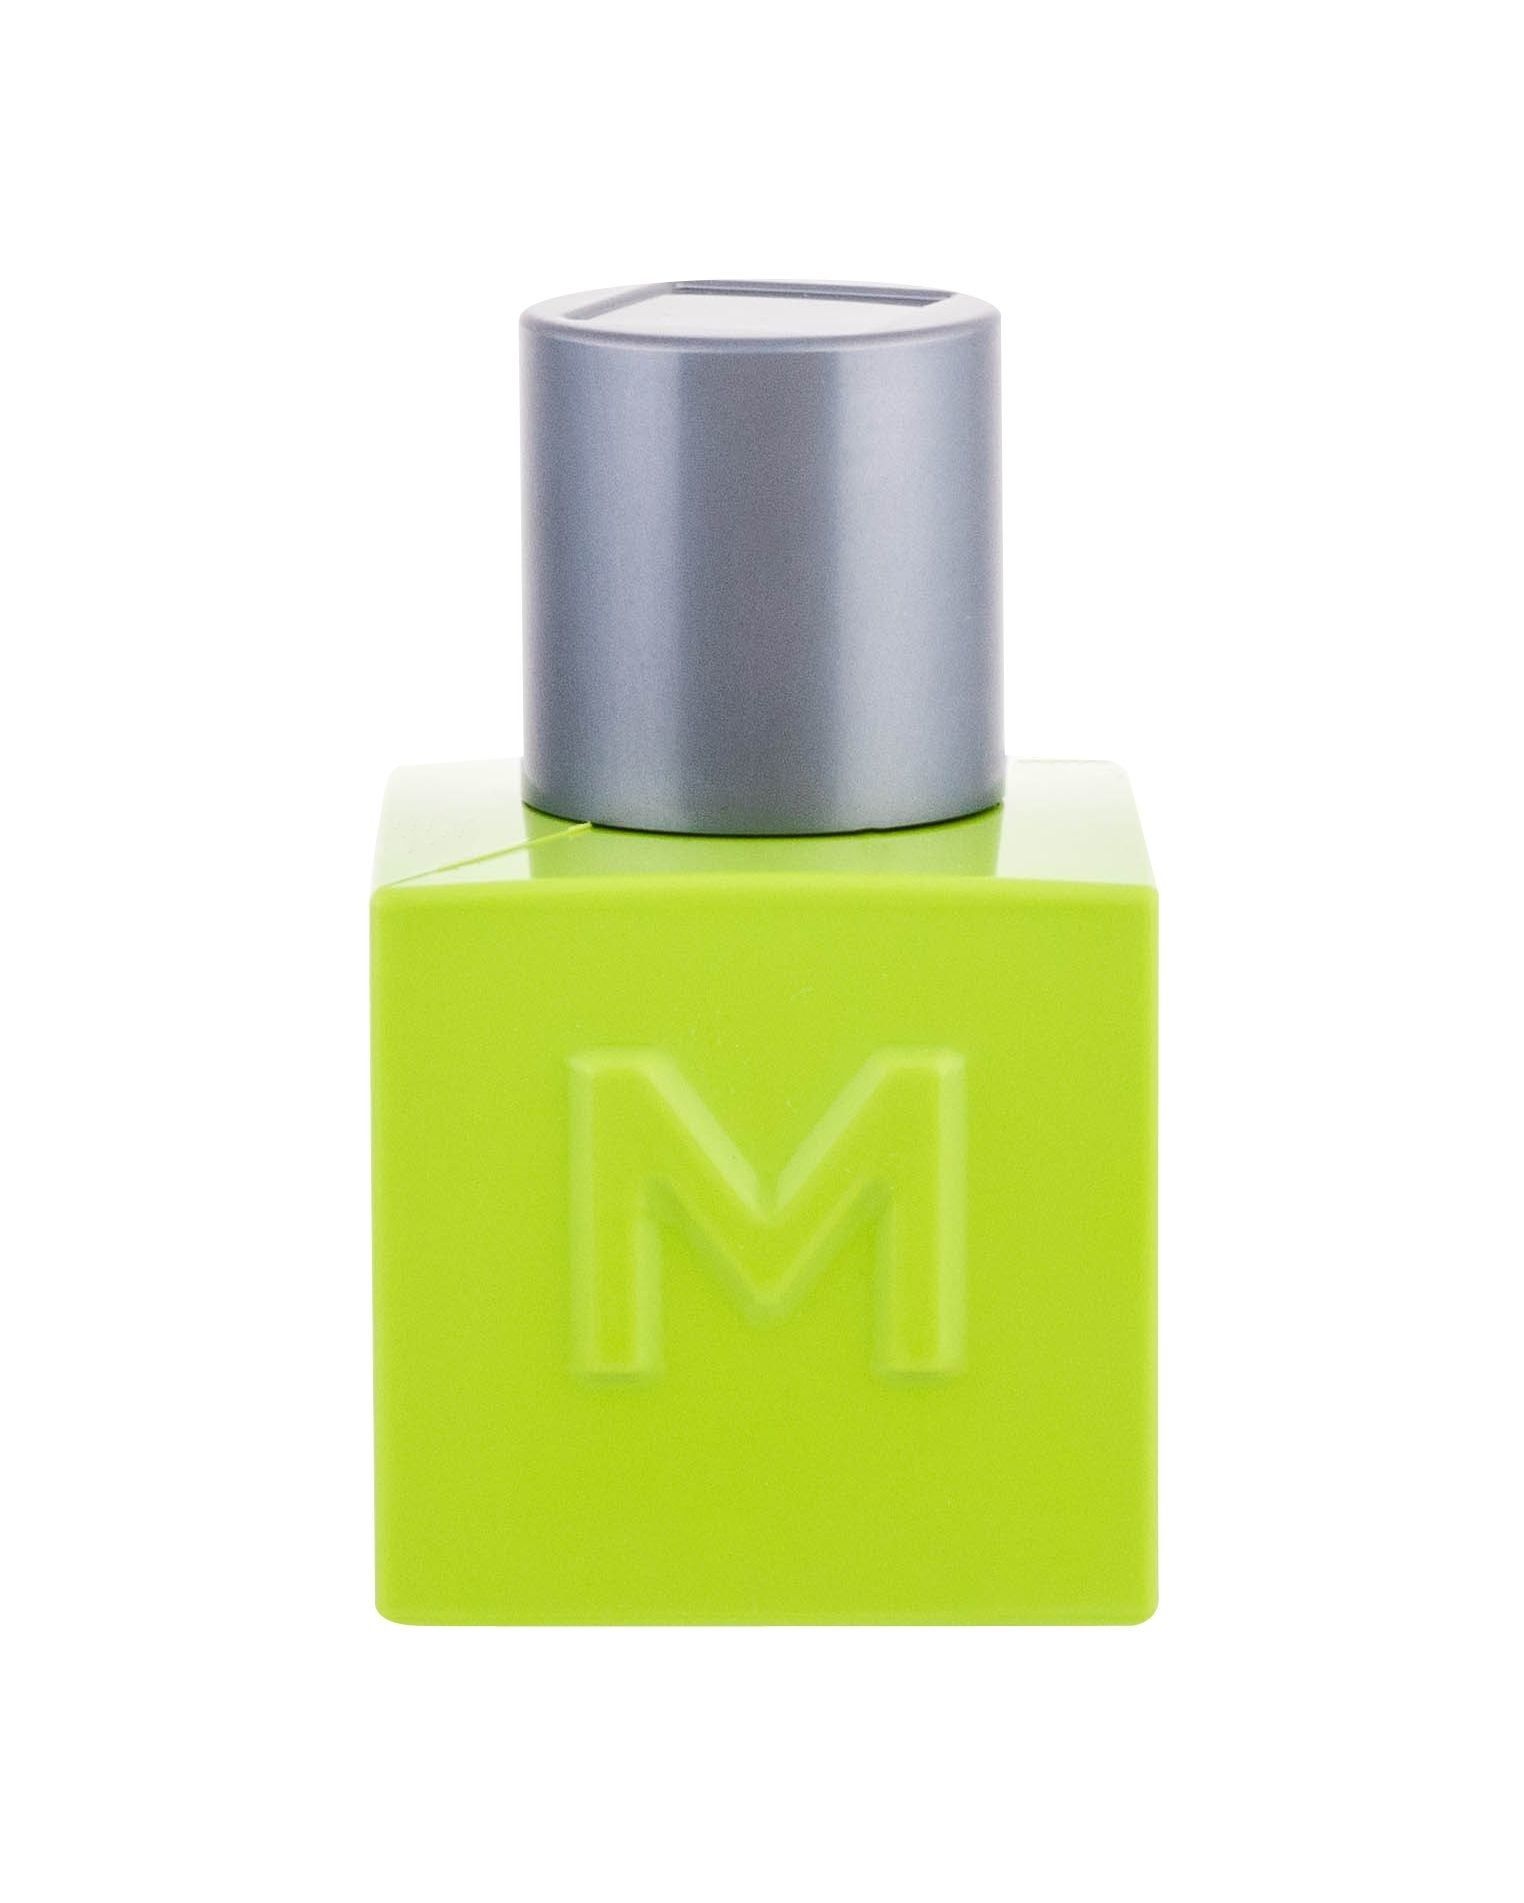 Mexx Man Festival Summer, edt 35ml